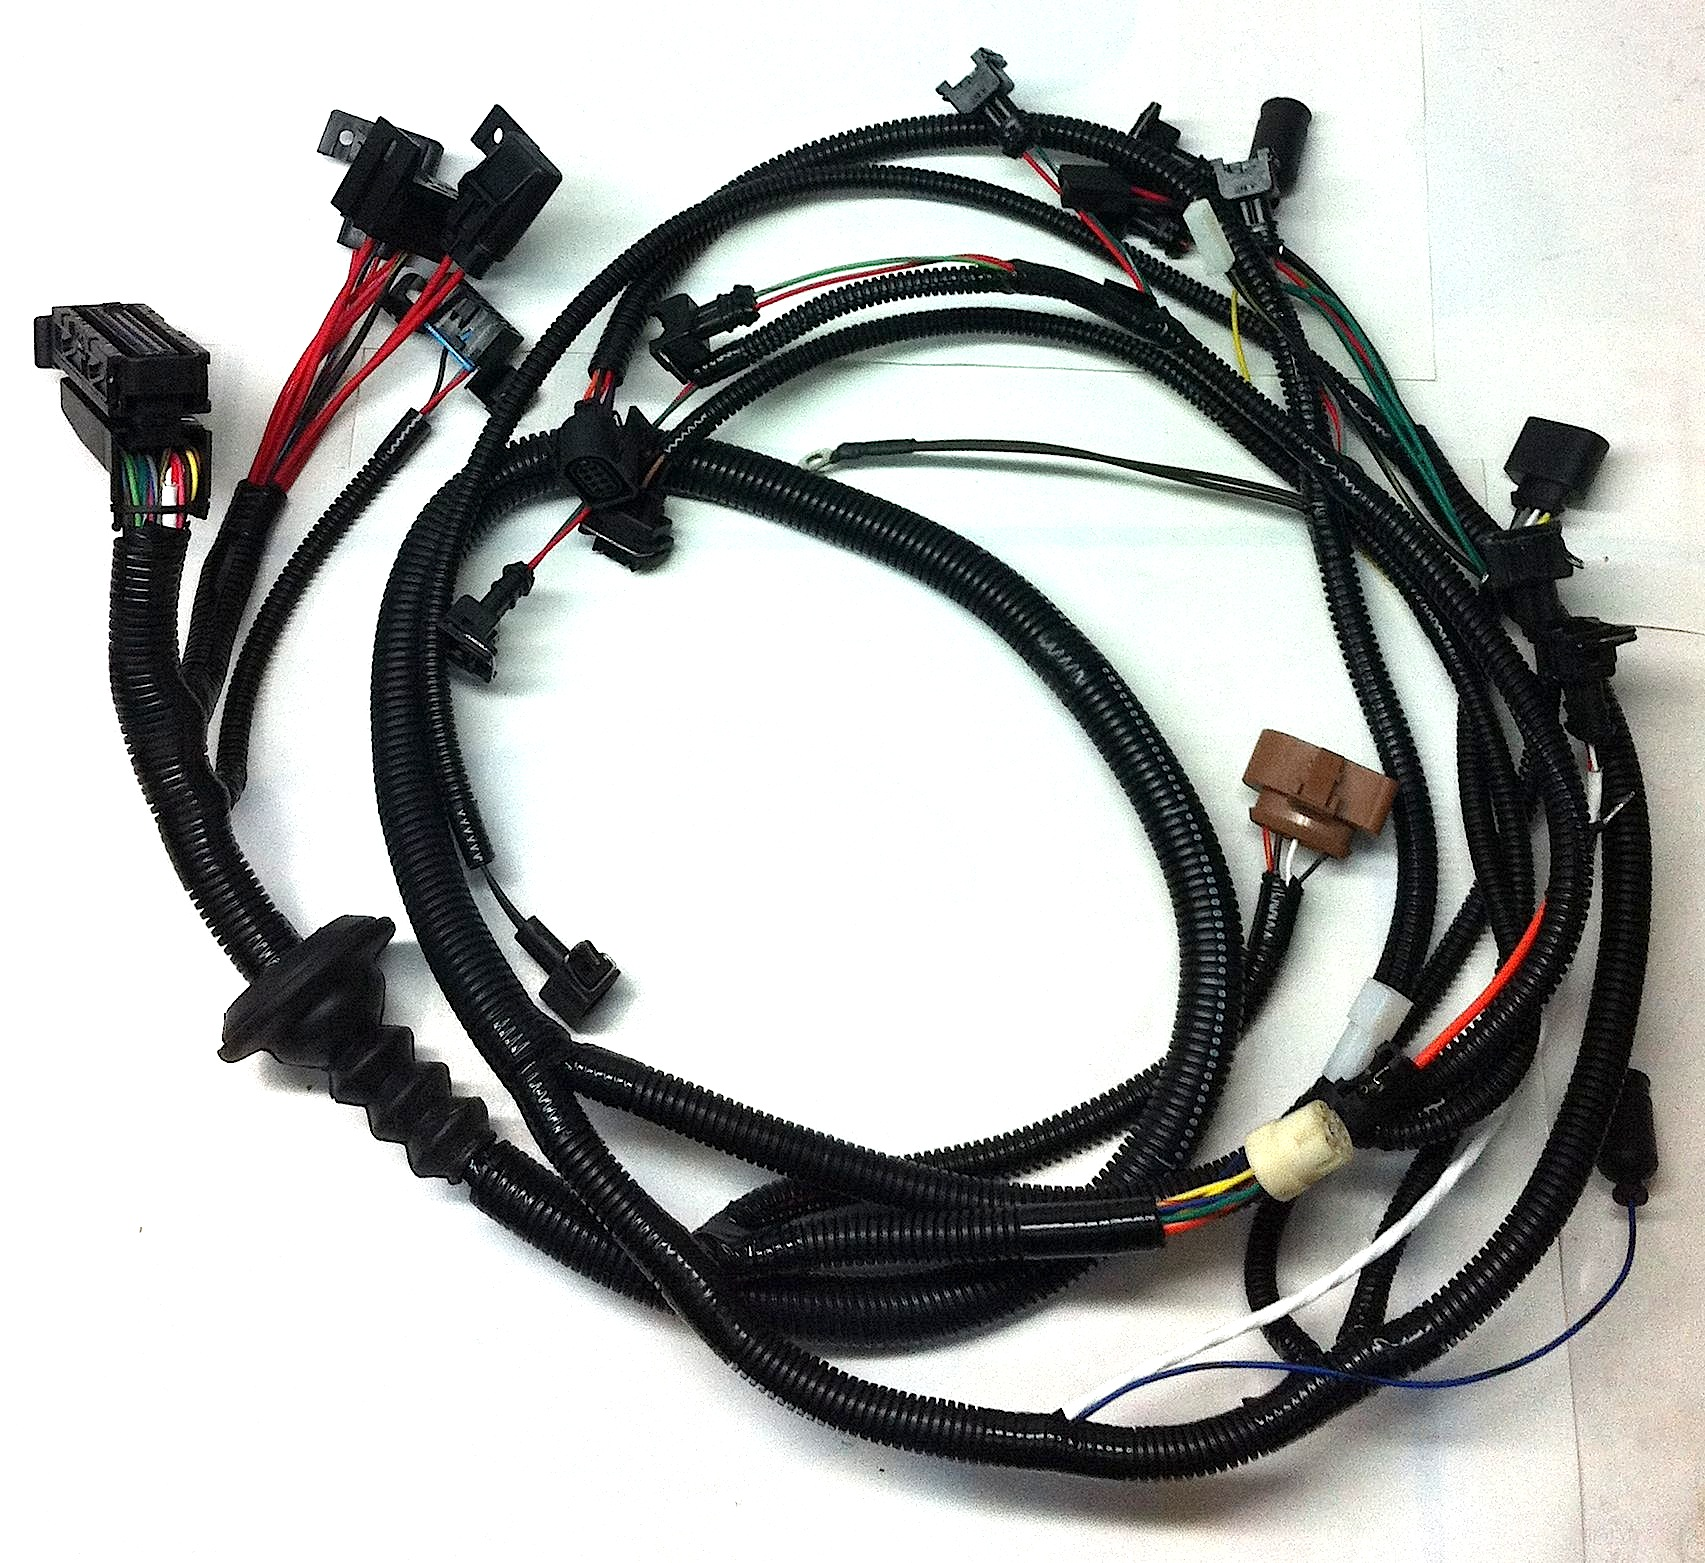 hight resolution of car wiring harness supplies wiring diagram detailed trailer wiring harness 2lr tiico conversion wiring harness foreign